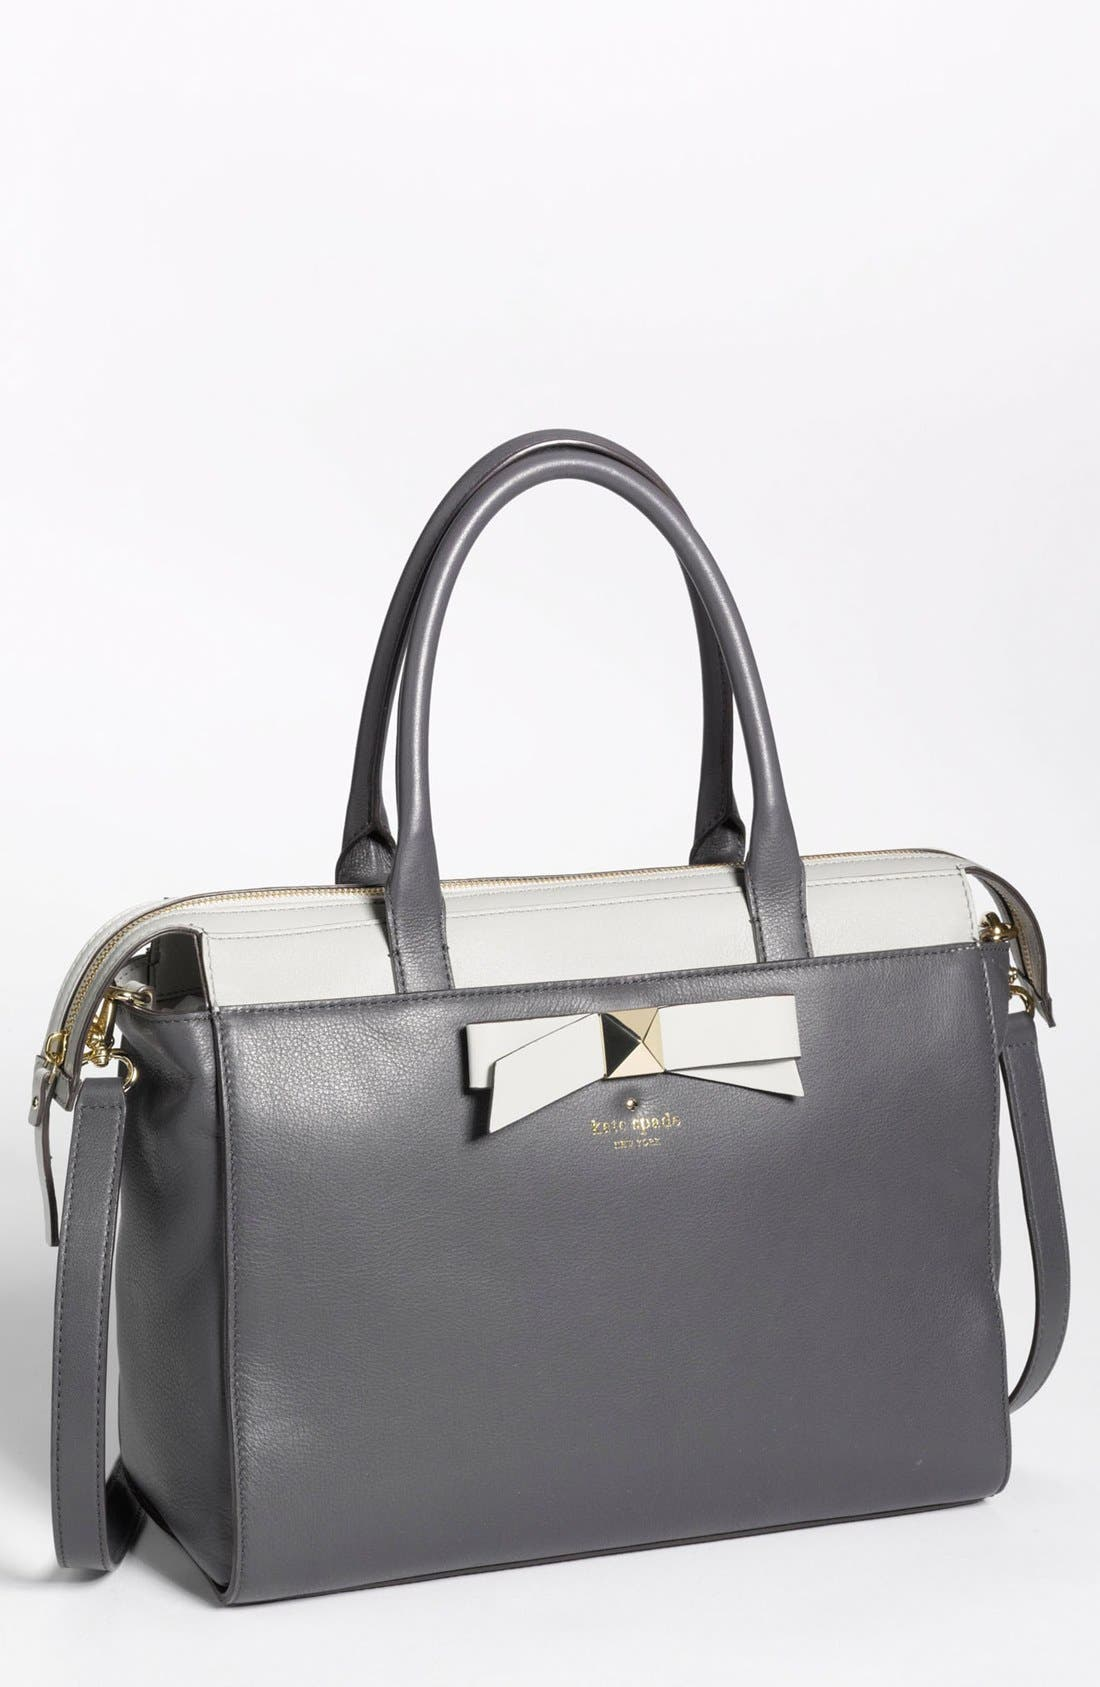 Main Image - kate spade new york 'hancock park - jeanne' leather satchel, medium